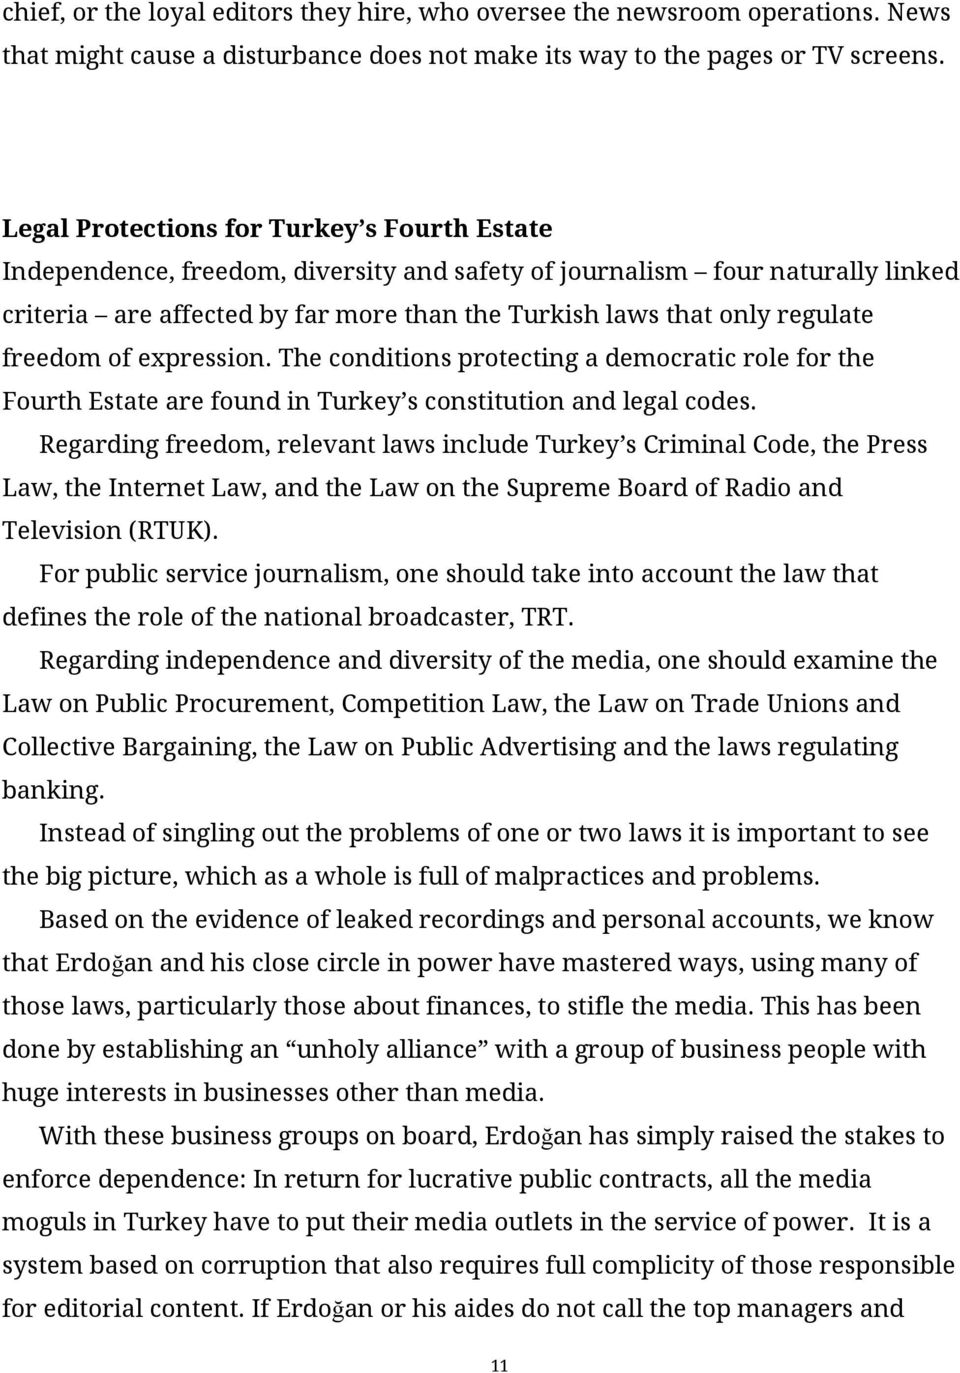 freedom of expression. The conditions protecting a democratic role for the Fourth Estate are found in Turkey s constitution and legal codes.